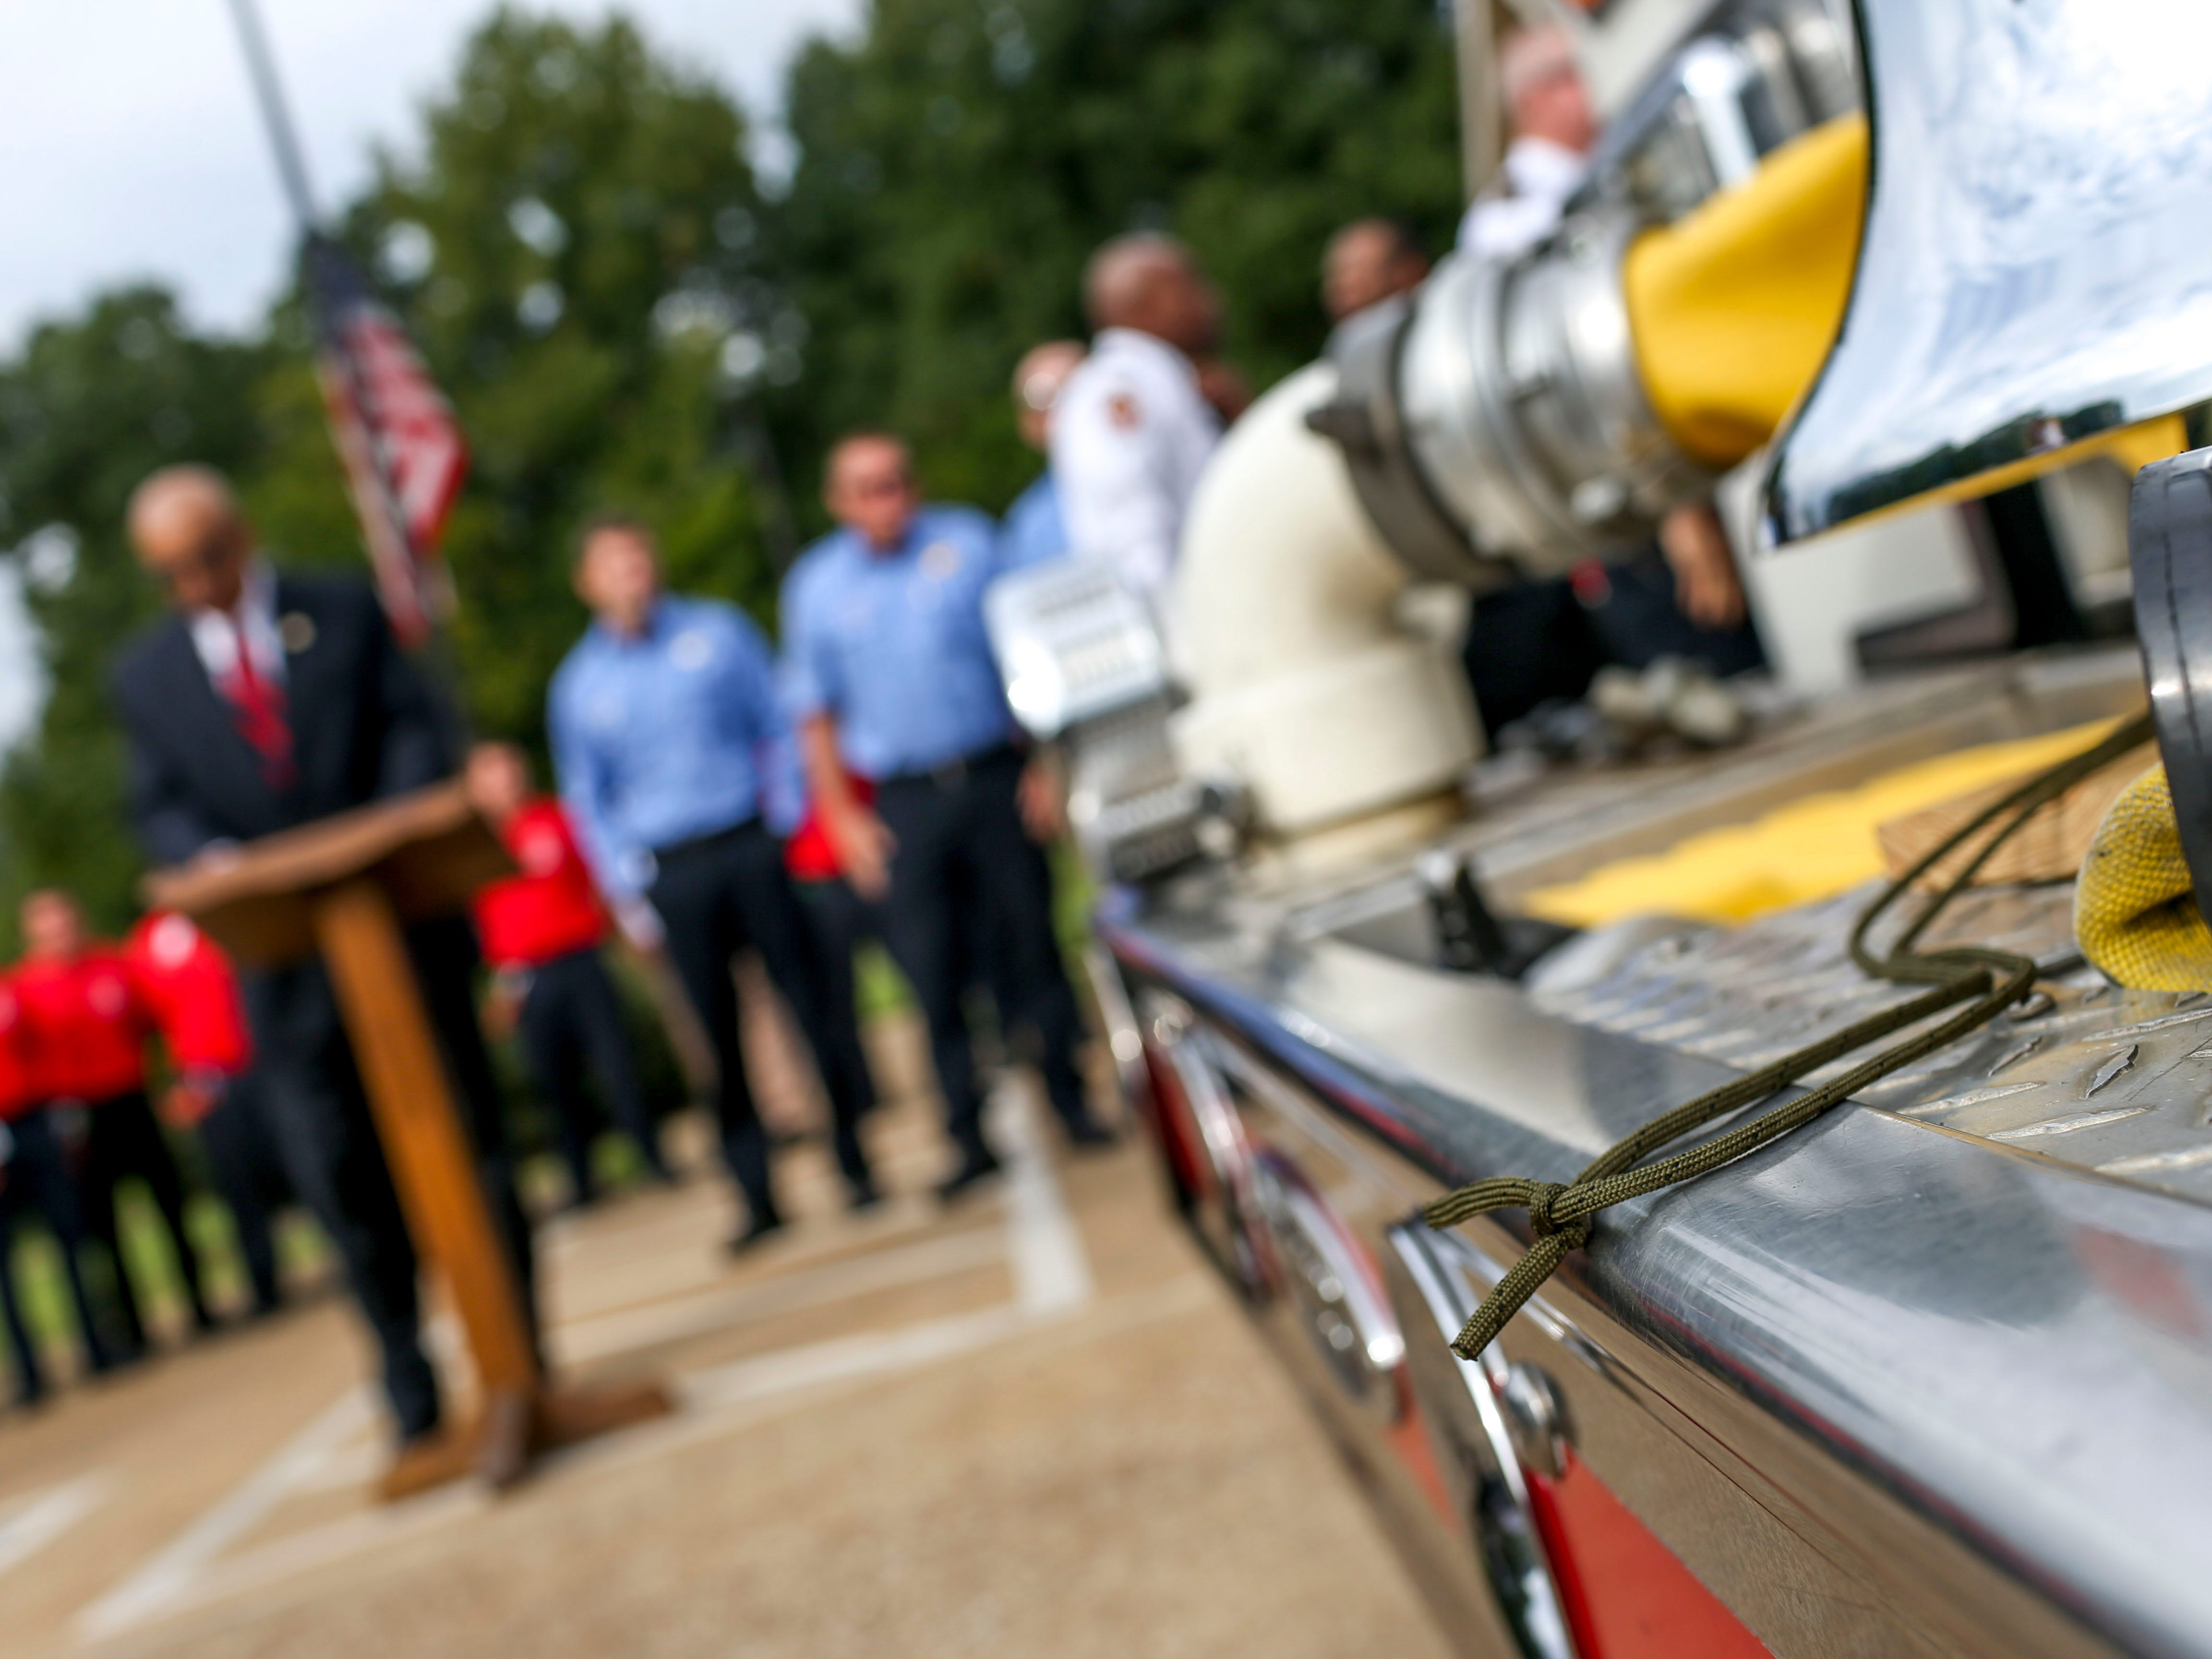 A string used to ring a bell sits idle after a ceremony honoring the victims of the 9/11 attacks at Fire Station 3 in Jackson, Tenn., on Tuesday, Sept. 11, 2018.